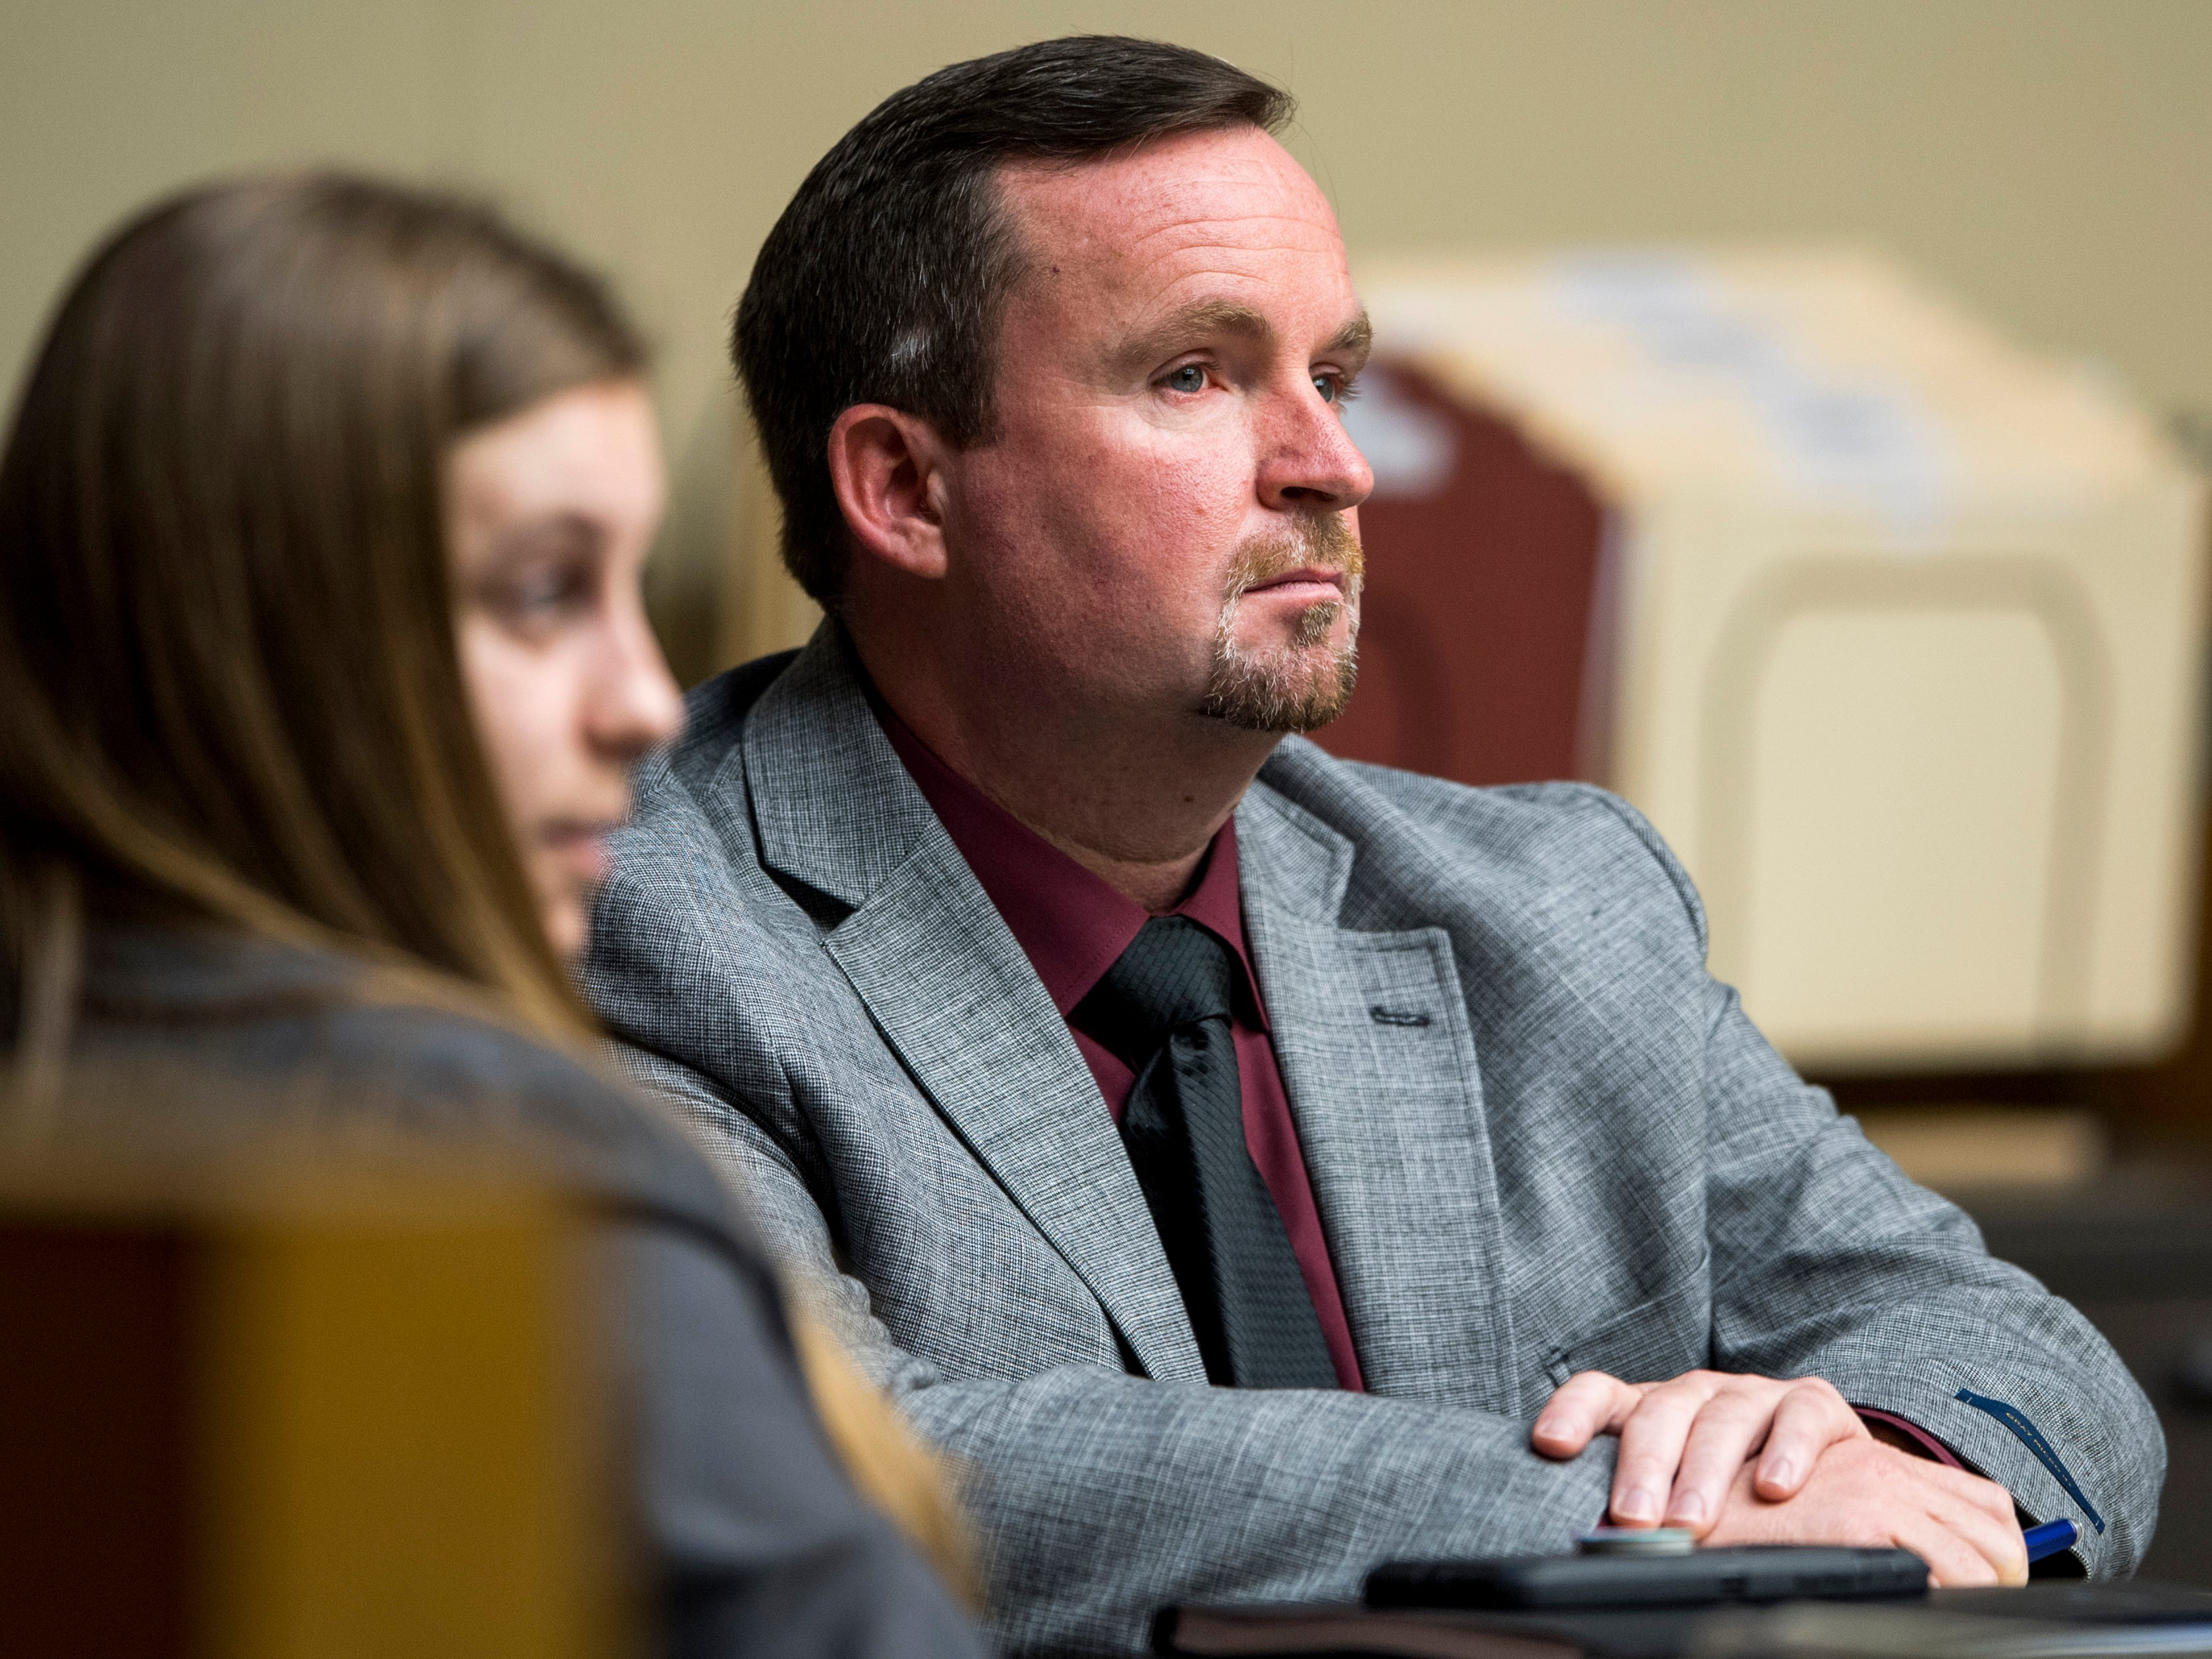 David Lynn Richards during his trial in Knox County Criminal Court on Friday, February 8, 2019.